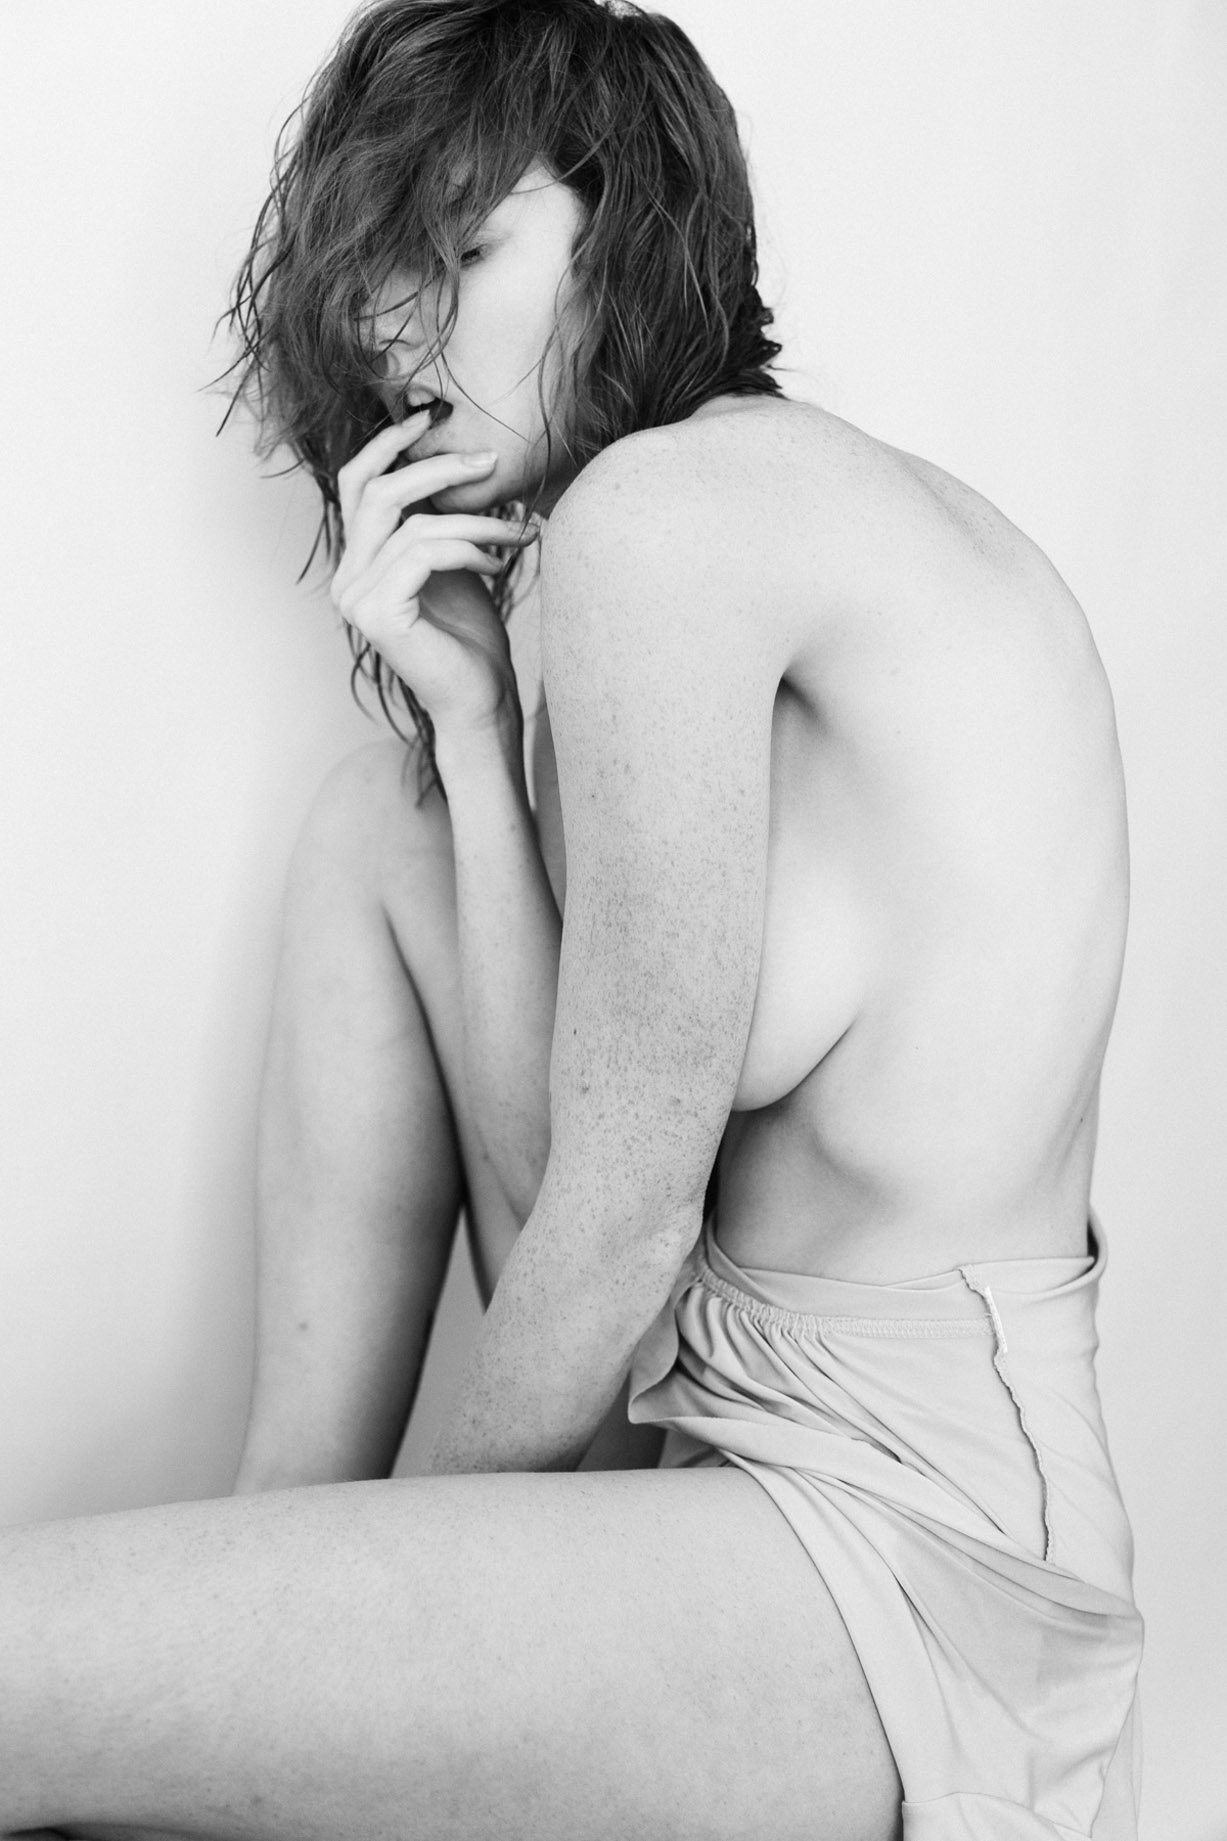 Leslie Sauvage by Maxime Besse / Maux Doux